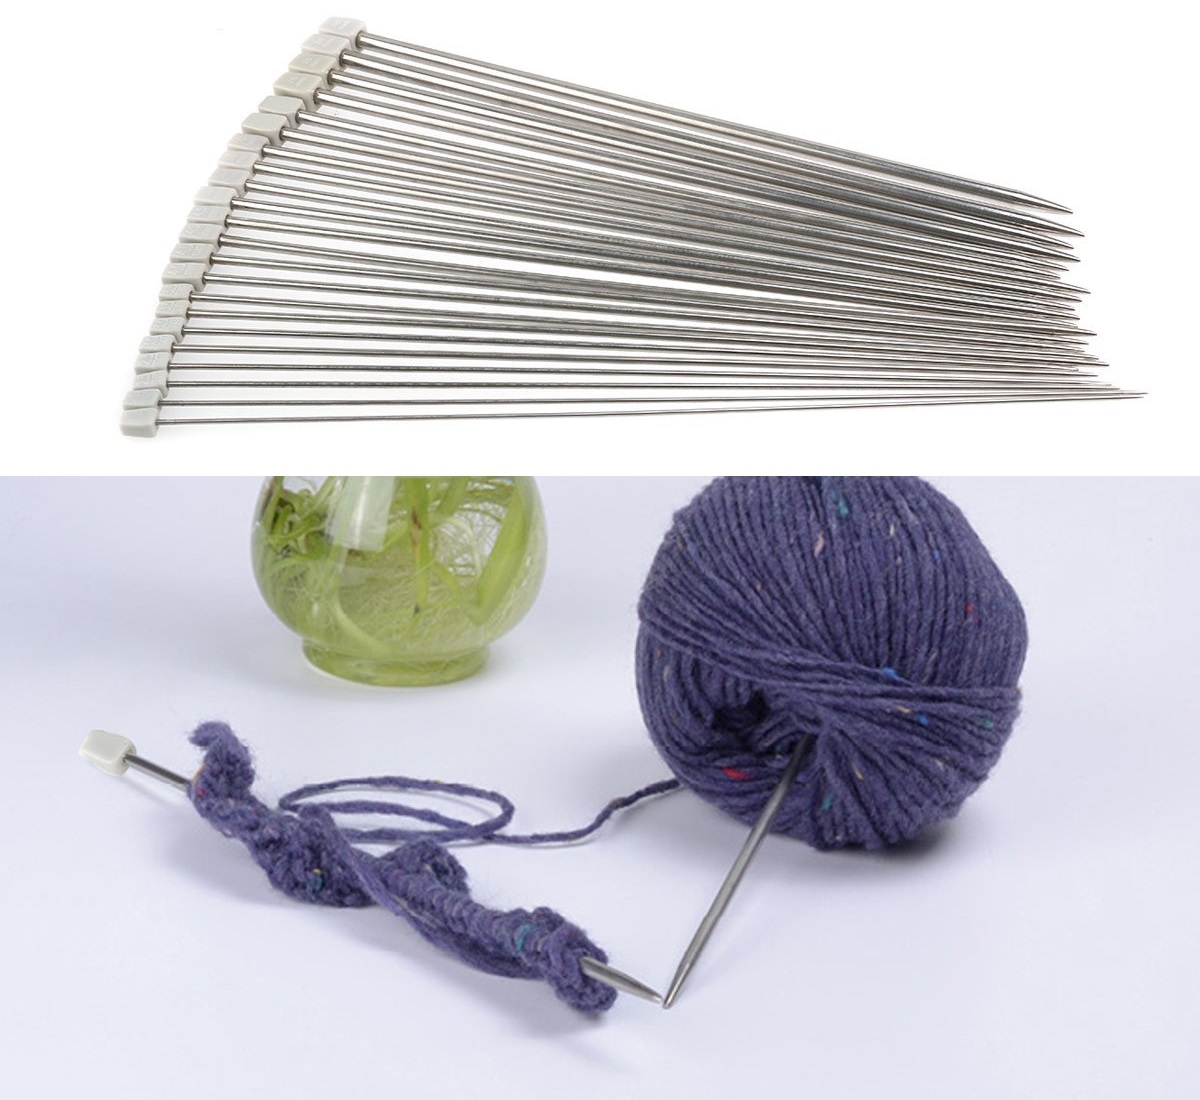 Knitting Needles Paint Kitchen : Diy unusual gift ideas for your family gifts